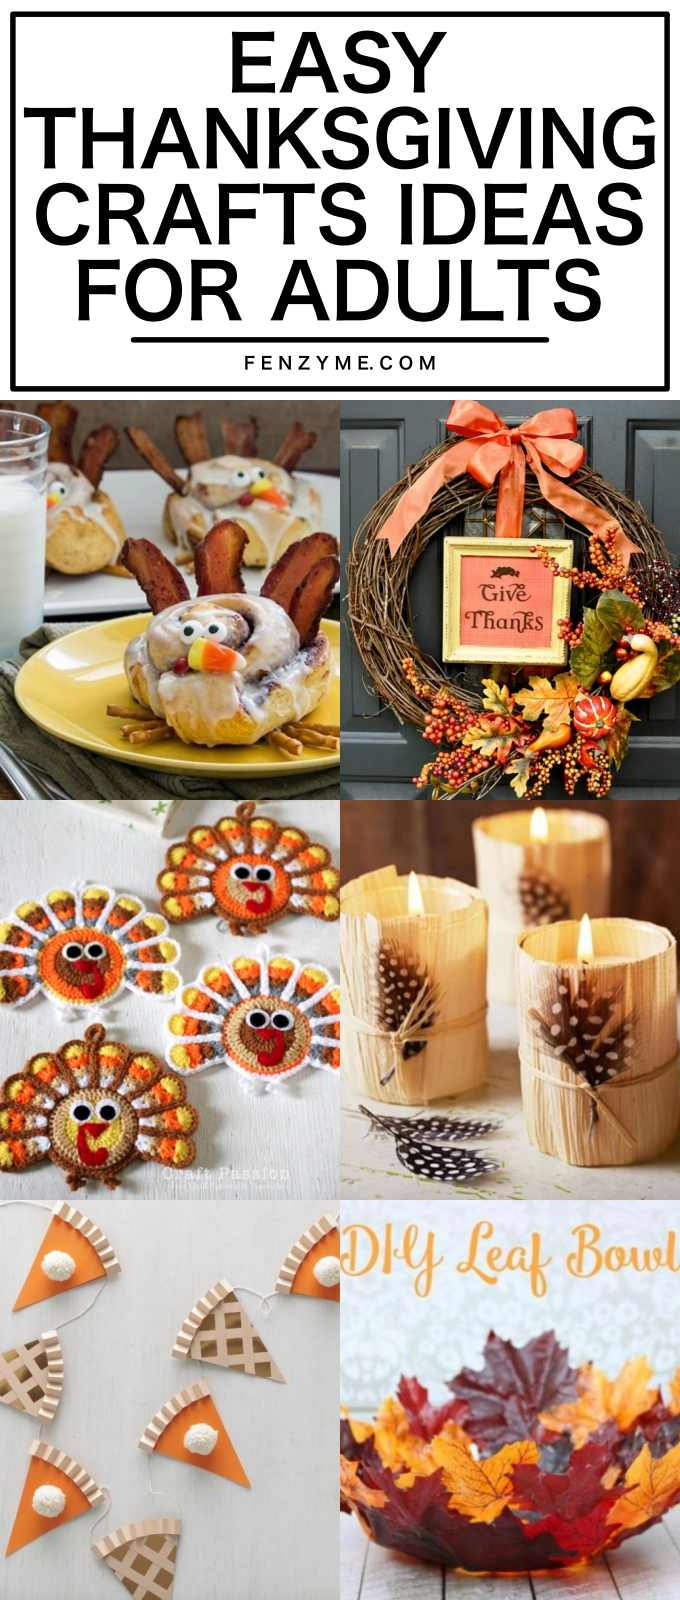 Easy-Thanksgiving-Crafts-Ideas-for-Adults